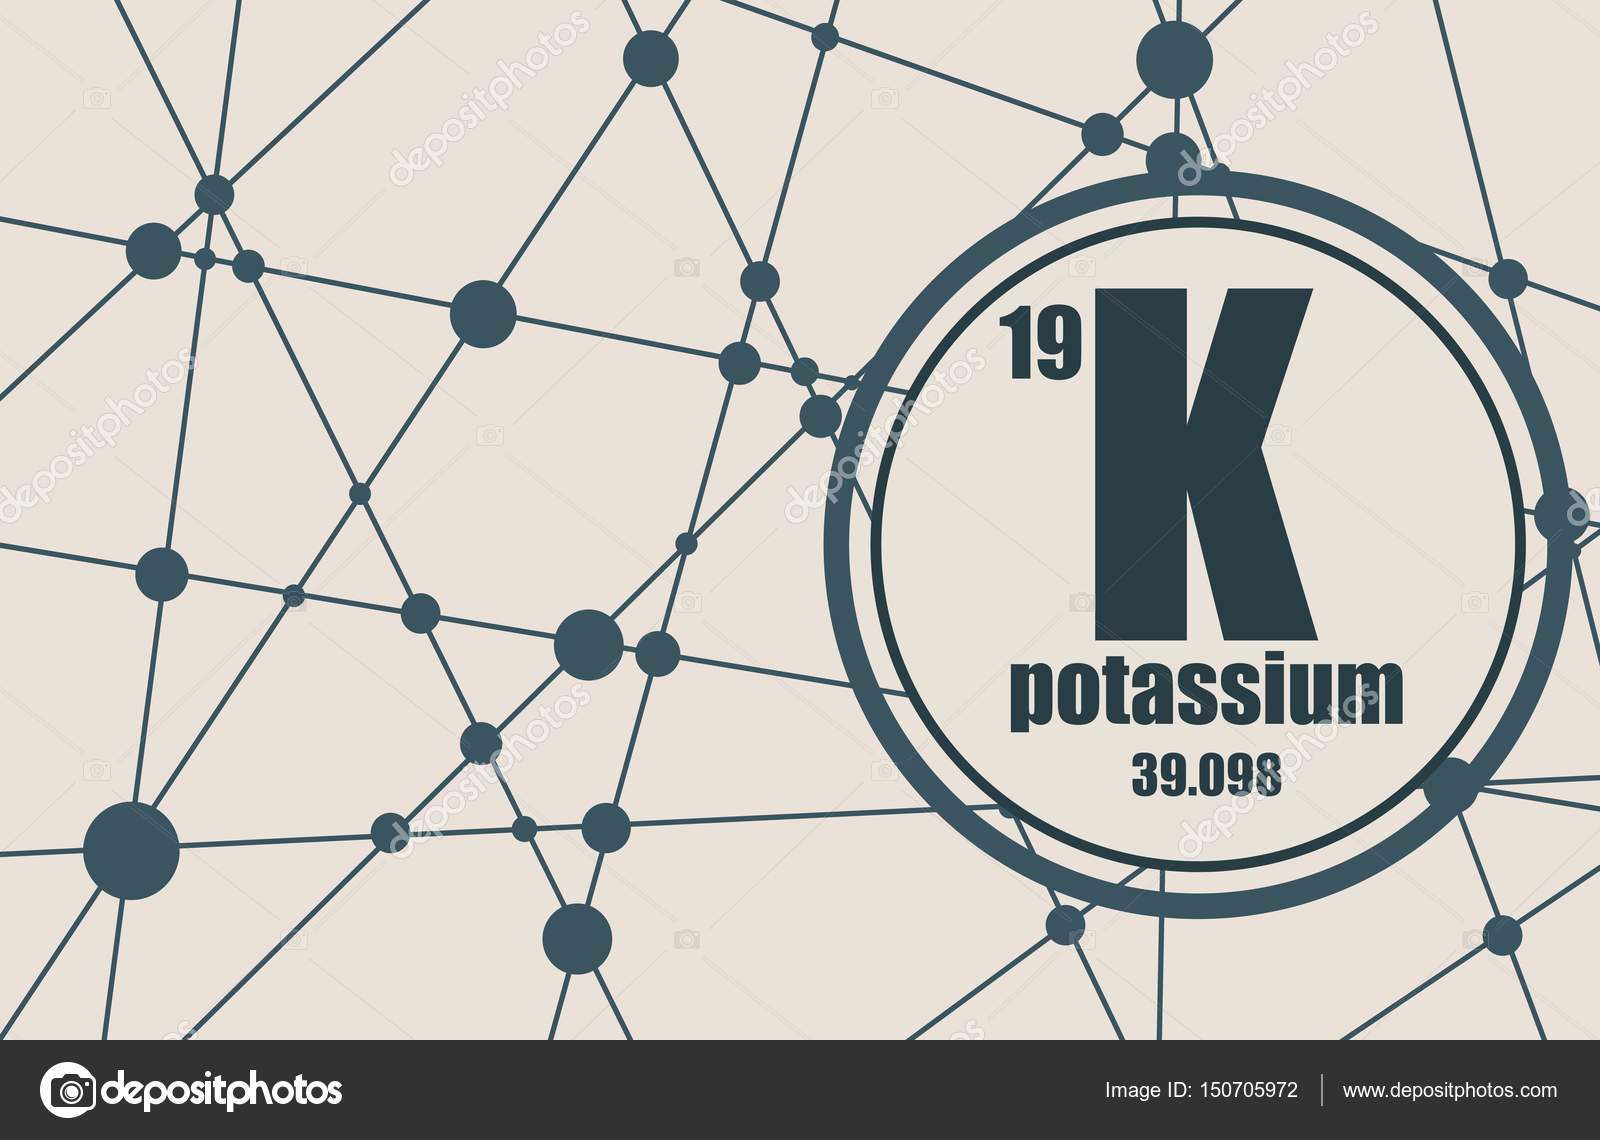 Potassium chemical element stock vector jegasra 150705972 potassium chemical element sign with atomic number and atomic weight chemical element of periodic table molecule and communication background buycottarizona